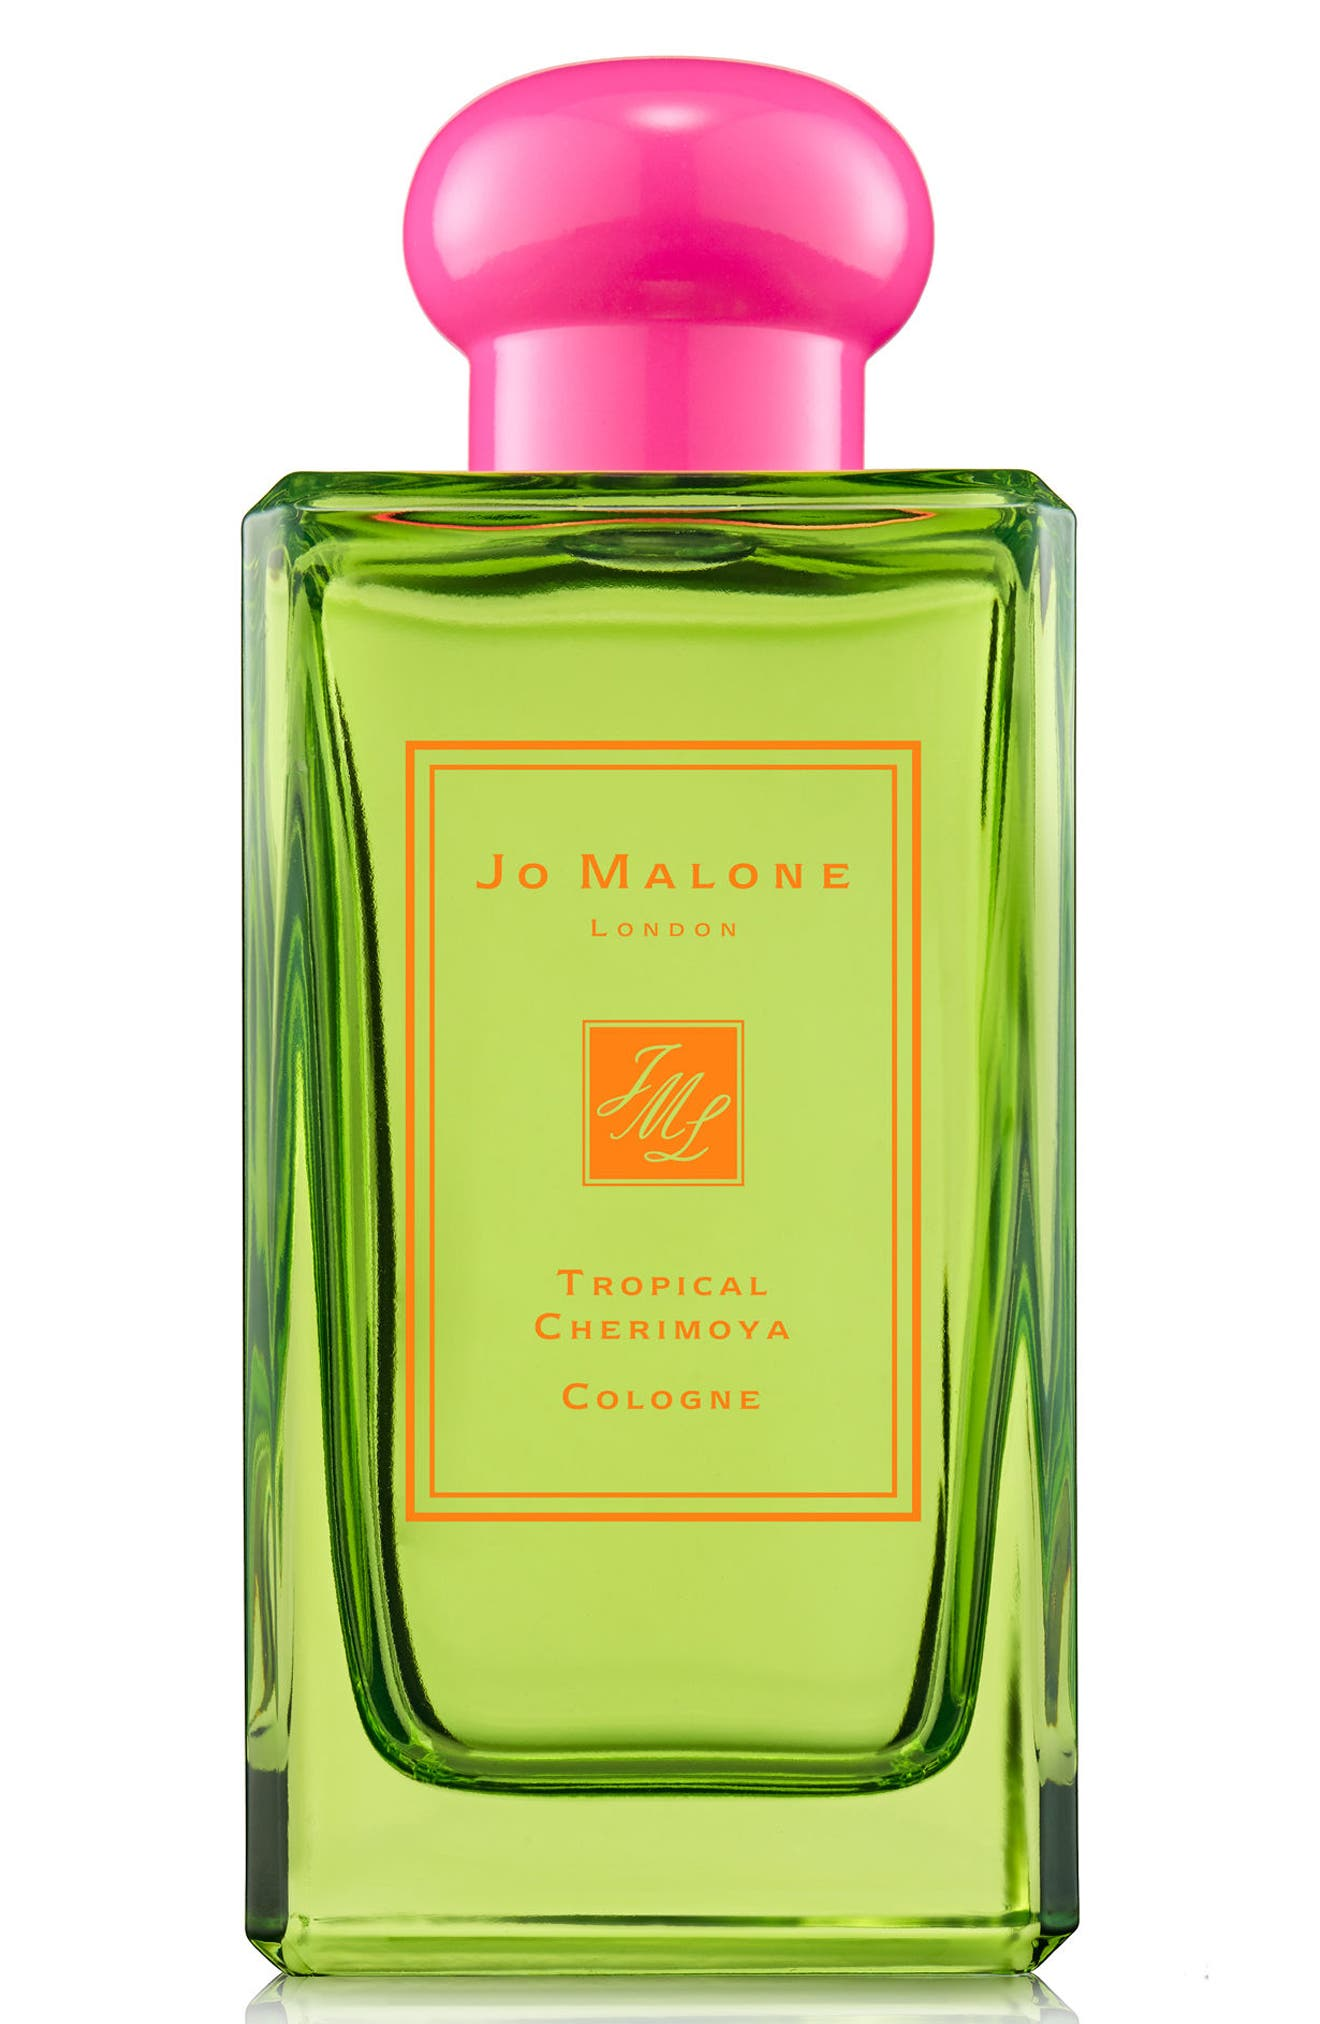 Tropical Cherimoya Cologne by Jo Malone London™